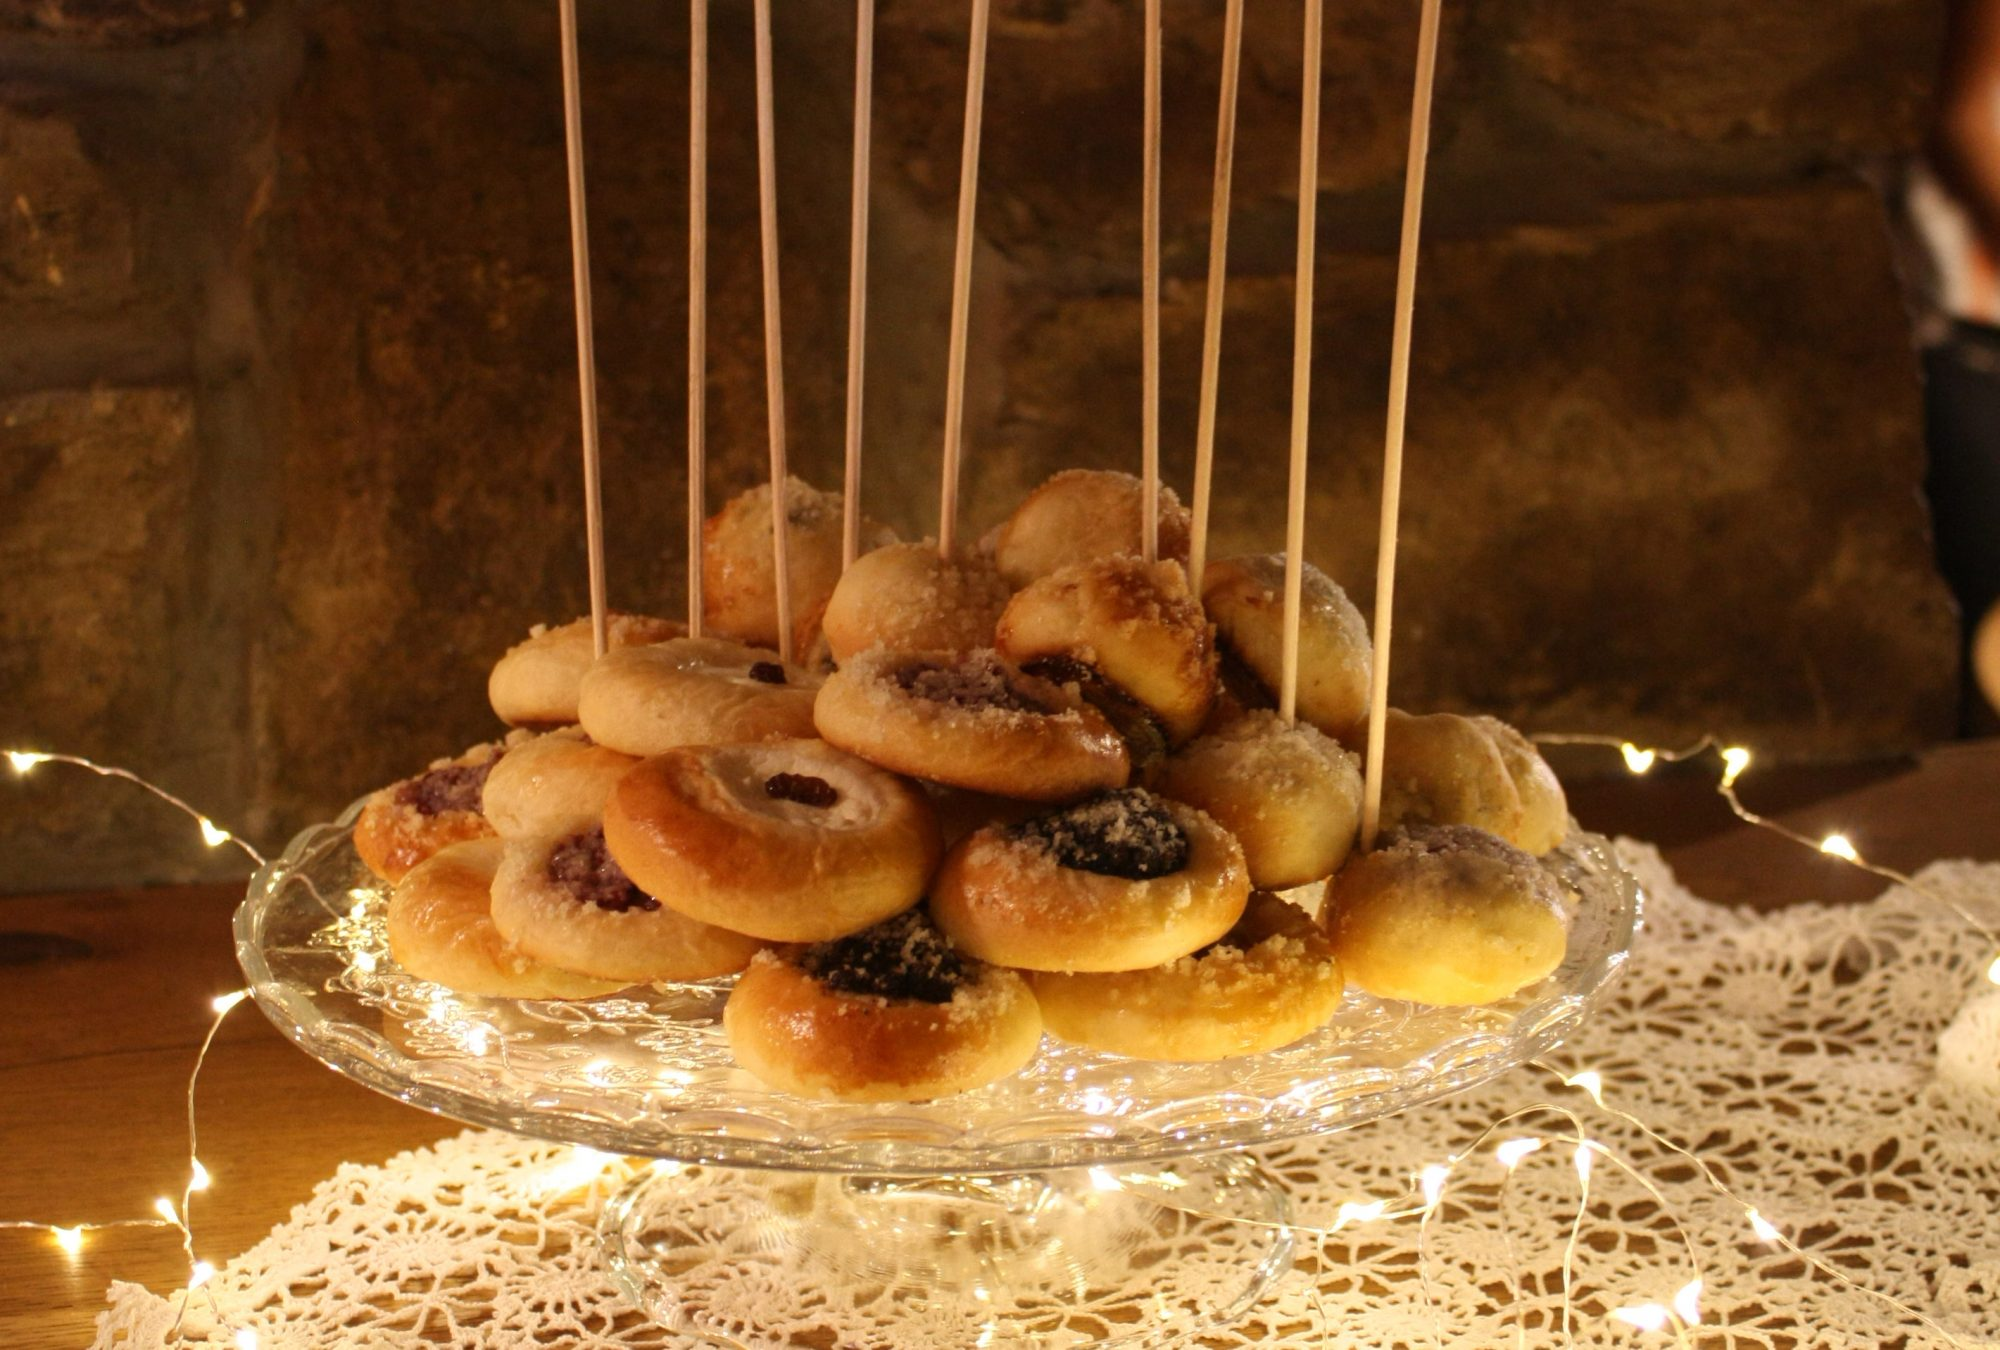 A plate of wedding kolaches